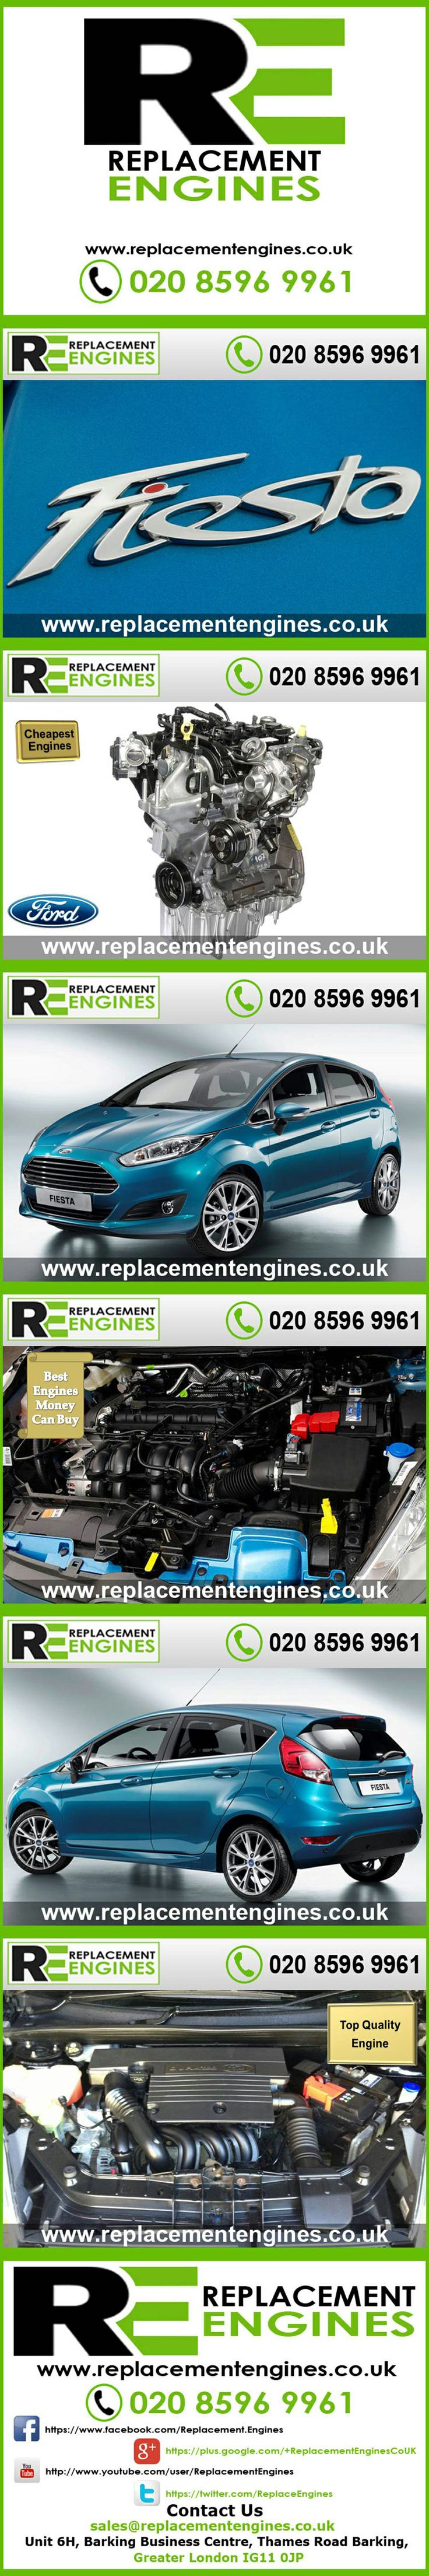 Ford Fiesta Engines for sale at the cheapest prices, we have low mileage used & reconditioned engines in stock now, ready to be delivered to anywhere in the UK or overseas, visit Replacement Engines website here.  http://www.replacementengines.co.uk/car-md.asp?part=all-ford-fiesta-engine&mo_id=784